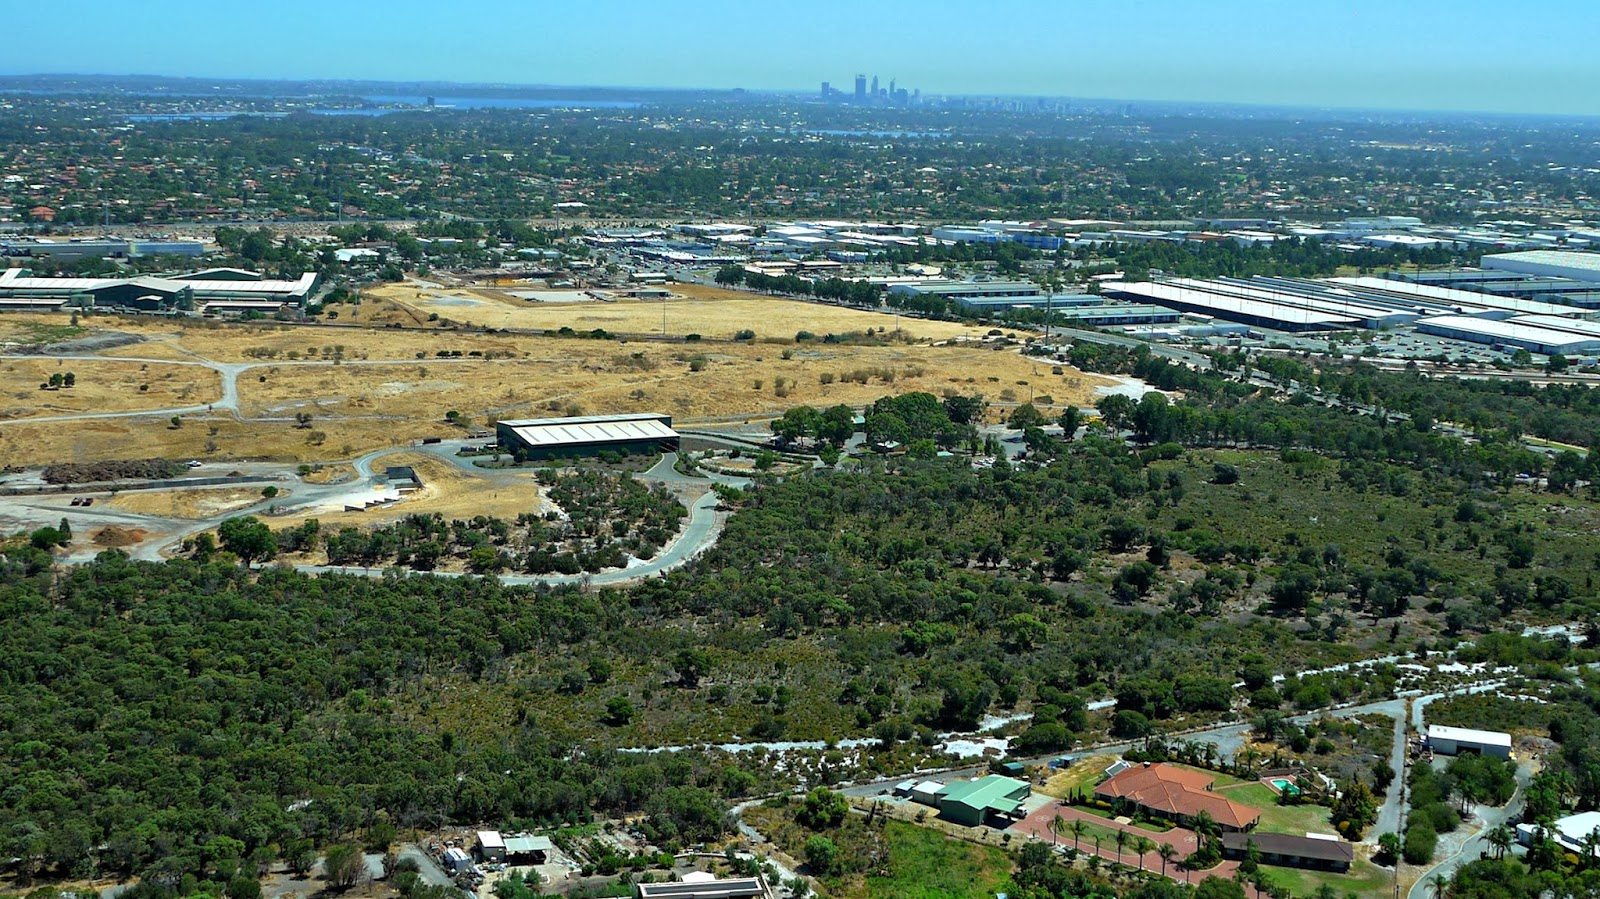 View from the air of Perth City Western Australia